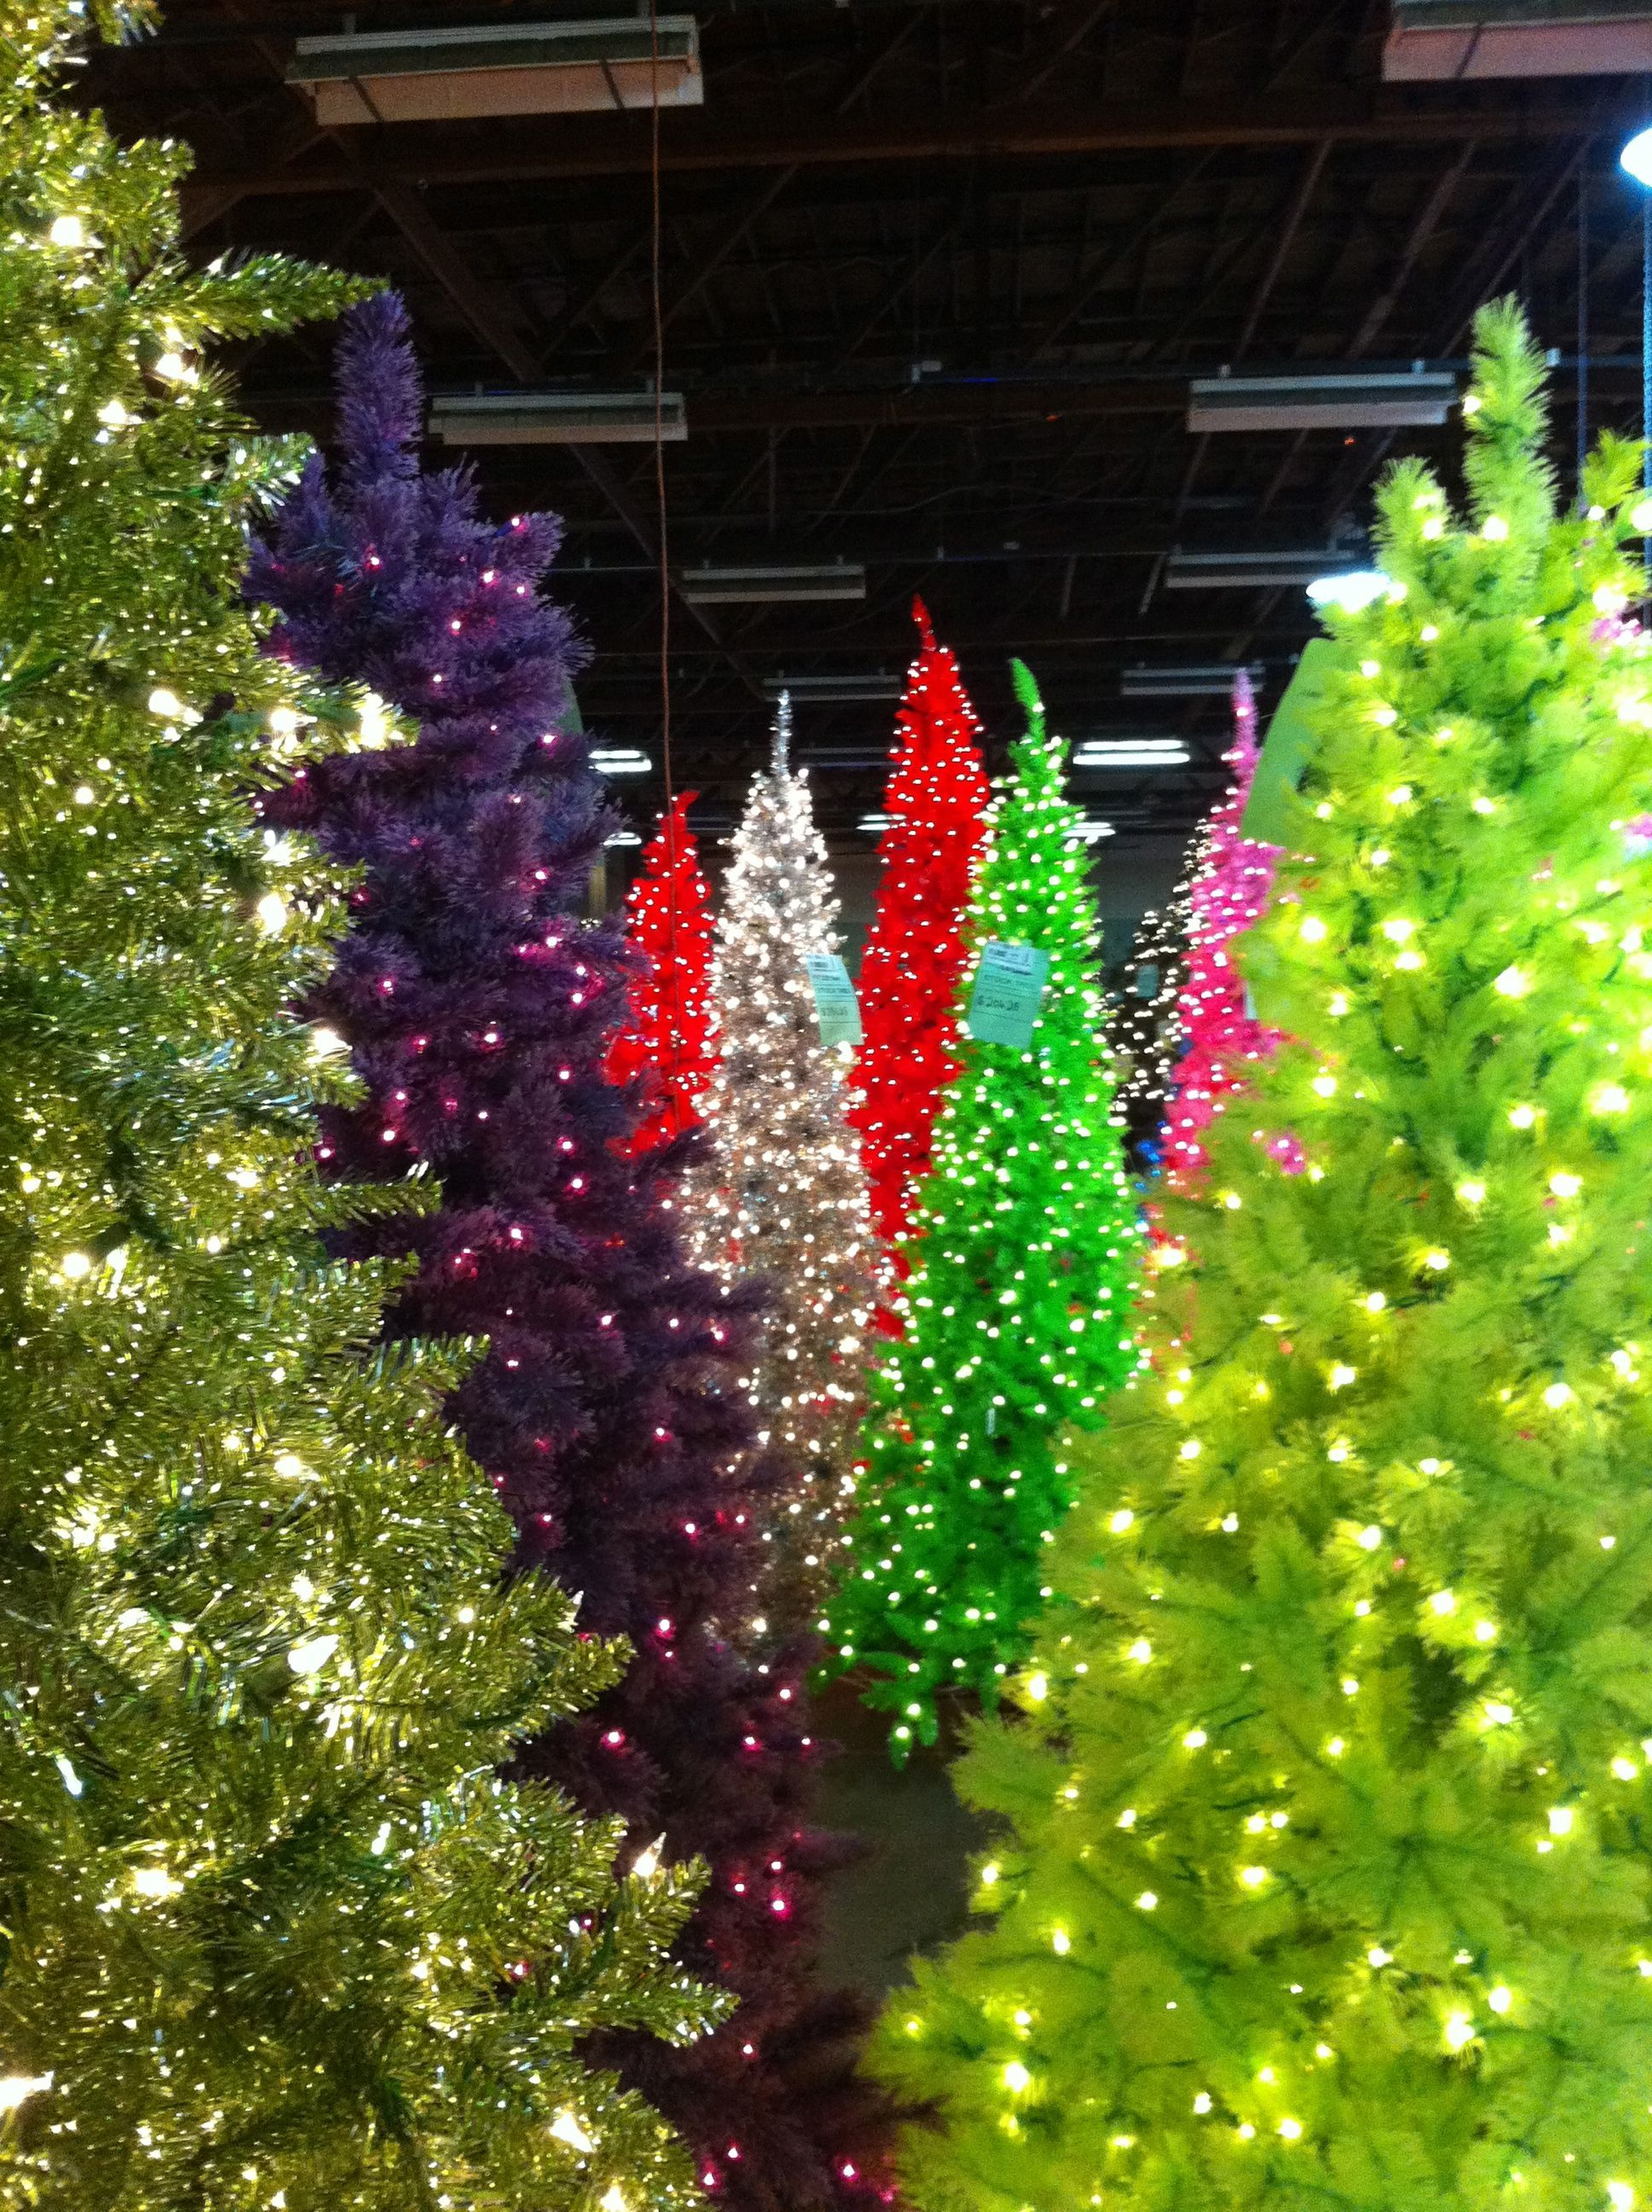 colorful trees | Christmas | Pinterest | Colorful trees and ...